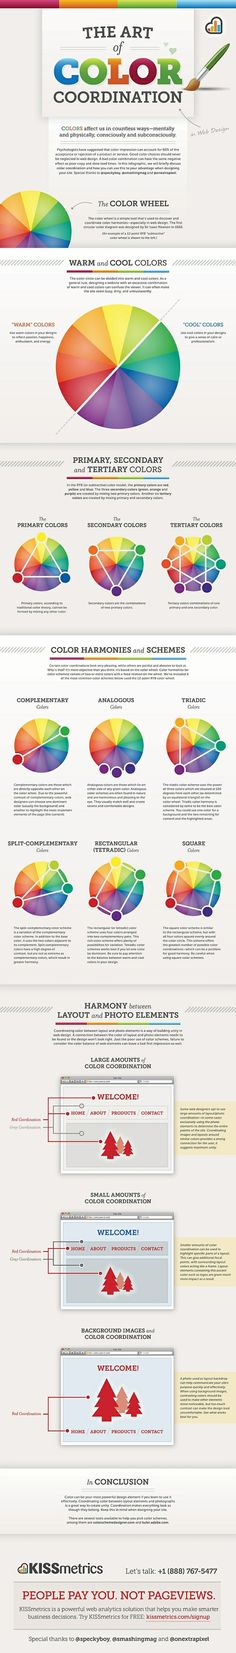 The Art of Colour Coordination in Web Design - Toronto Design Blog